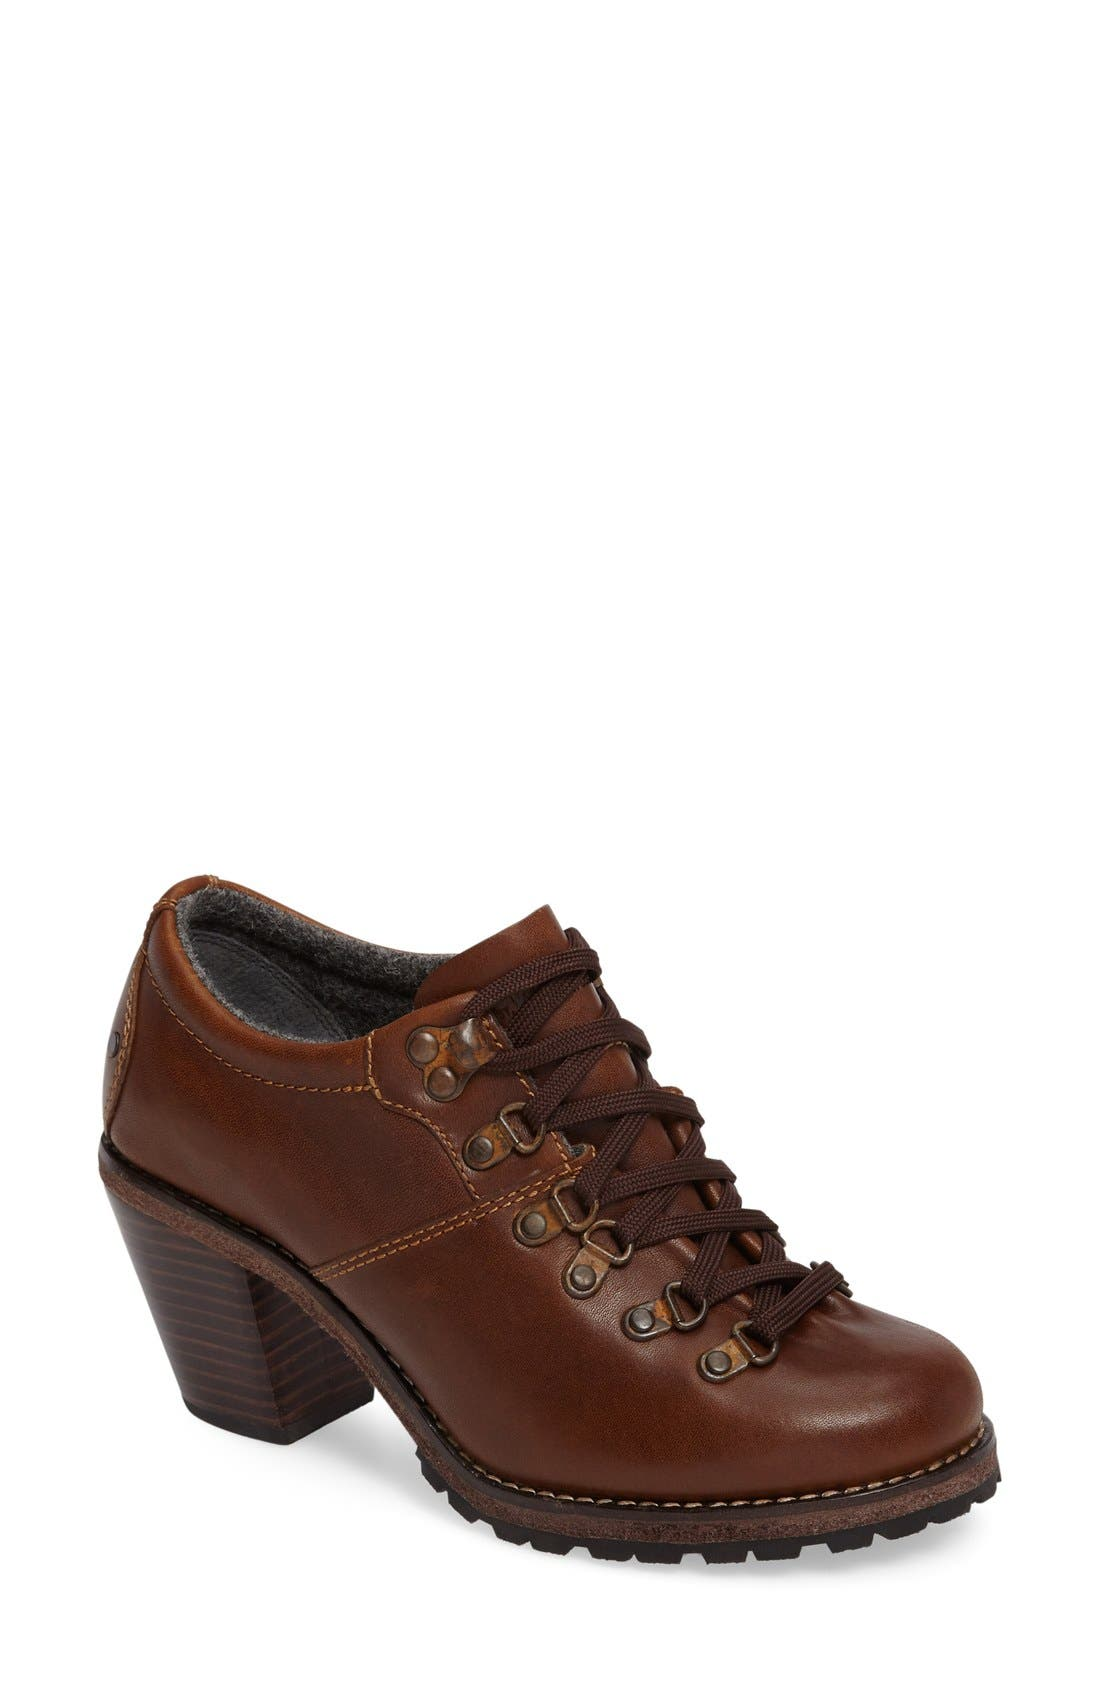 Alternate Image 1 Selected - Woolrich Cascade Range Oxford Pump (Women)